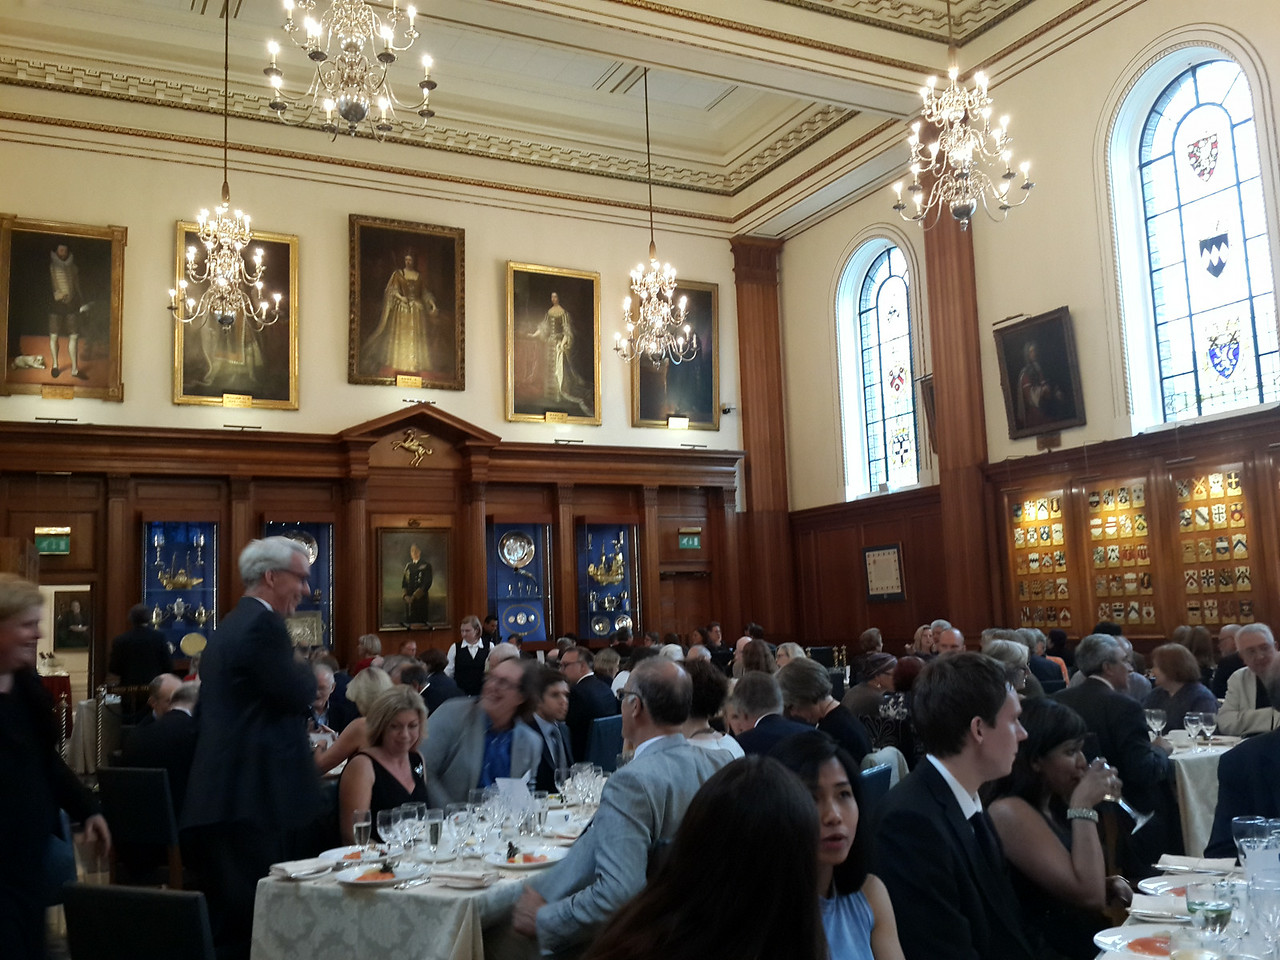 The conference dinner was held in the inner temple.